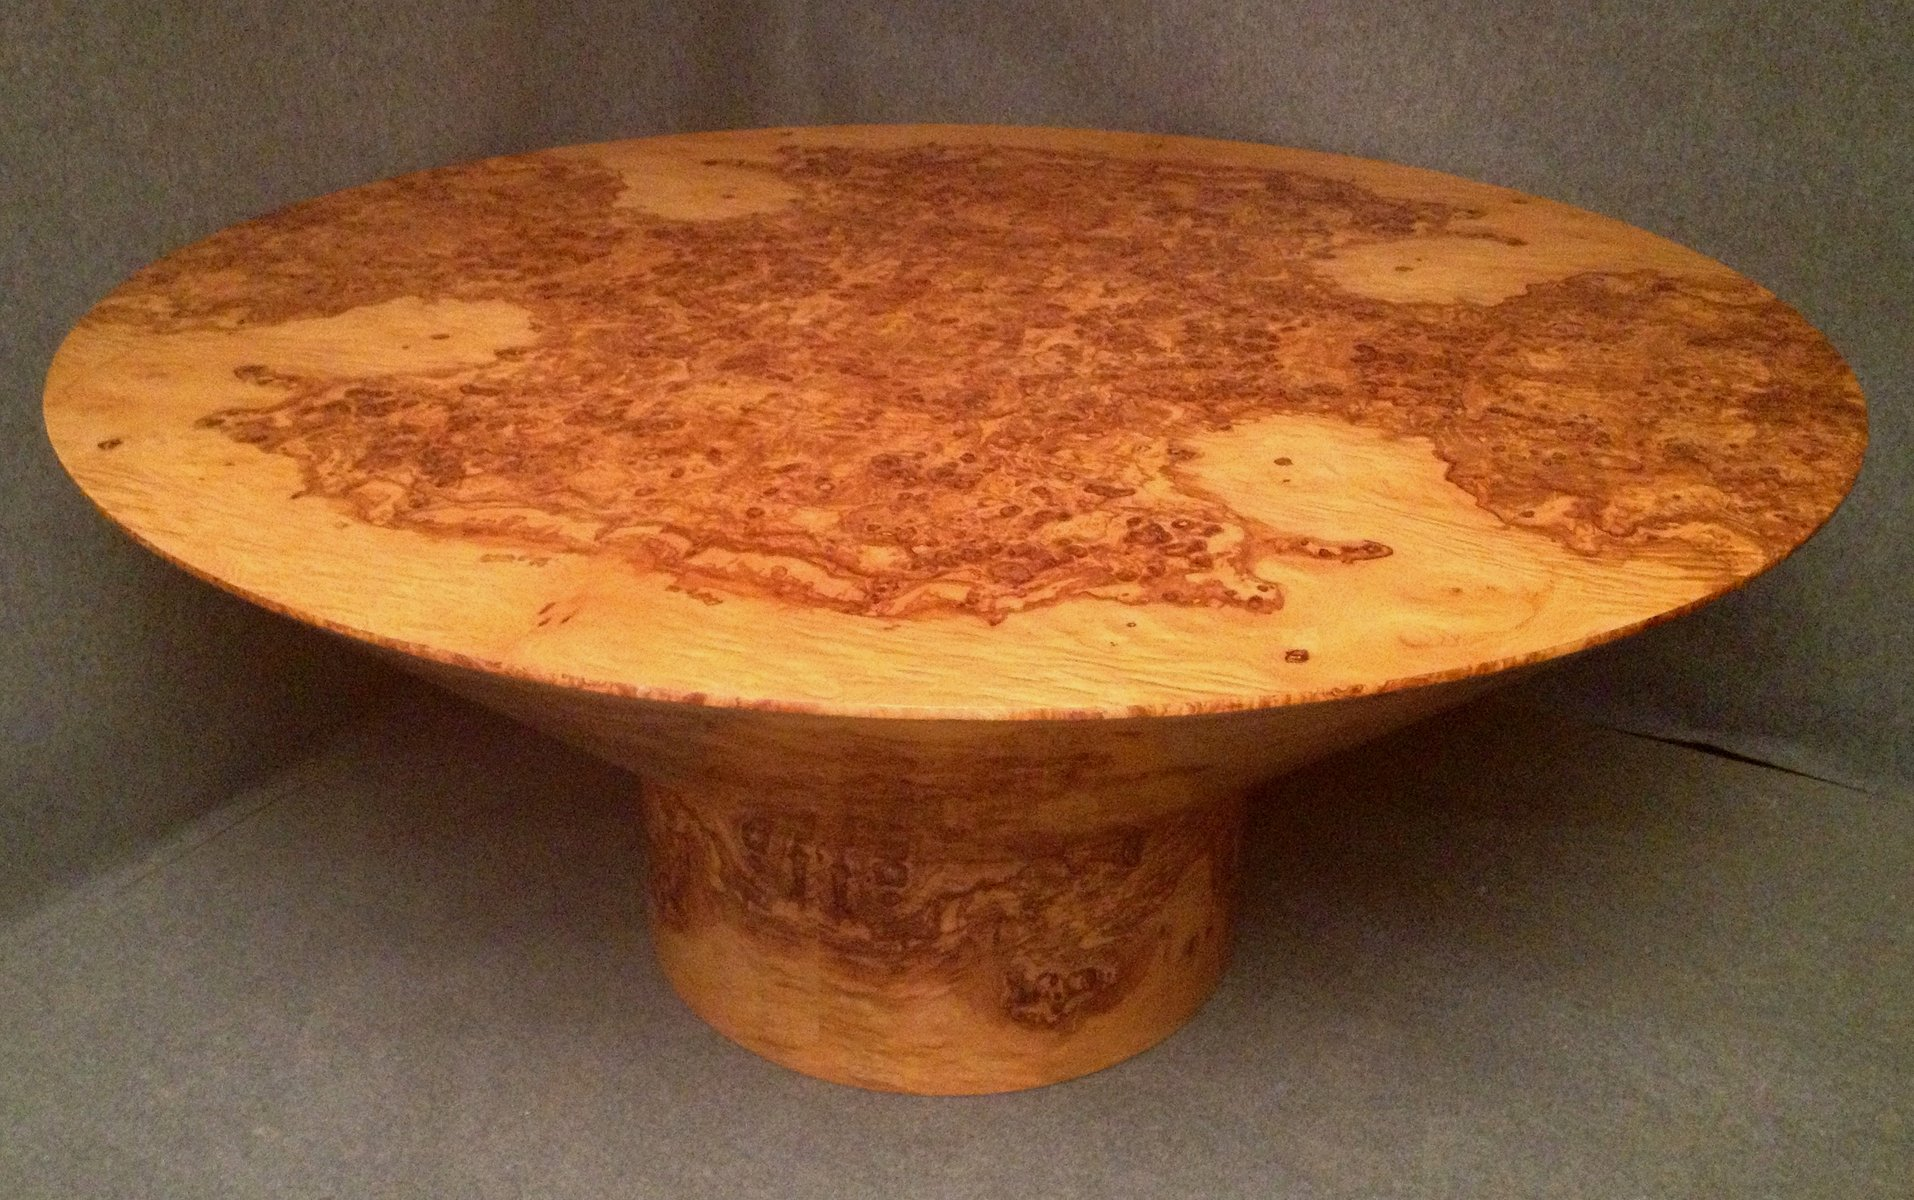 art deco round olive burl wood table 1920 for sale at pamono. Black Bedroom Furniture Sets. Home Design Ideas